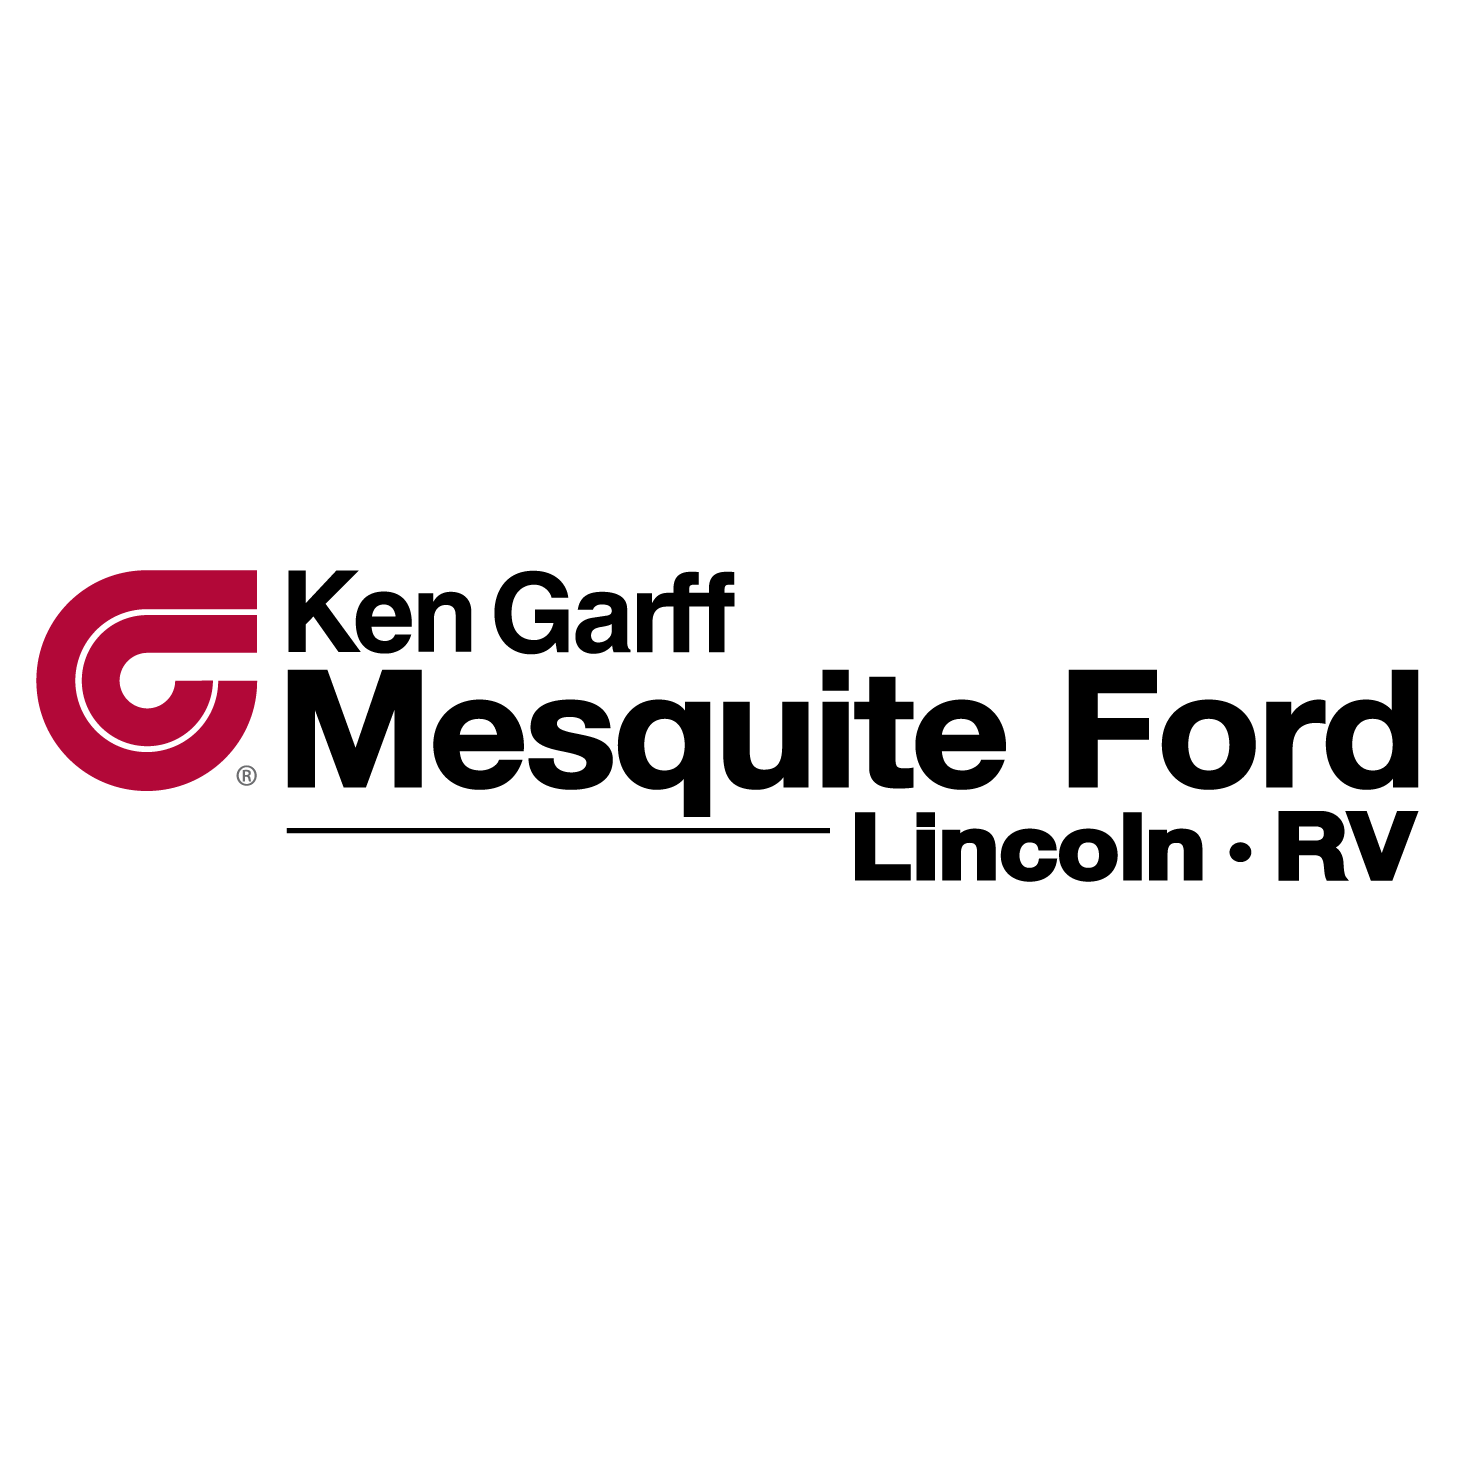 Mesquite Ford Lincoln & RV - Mesquite, NV - Auto Dealers